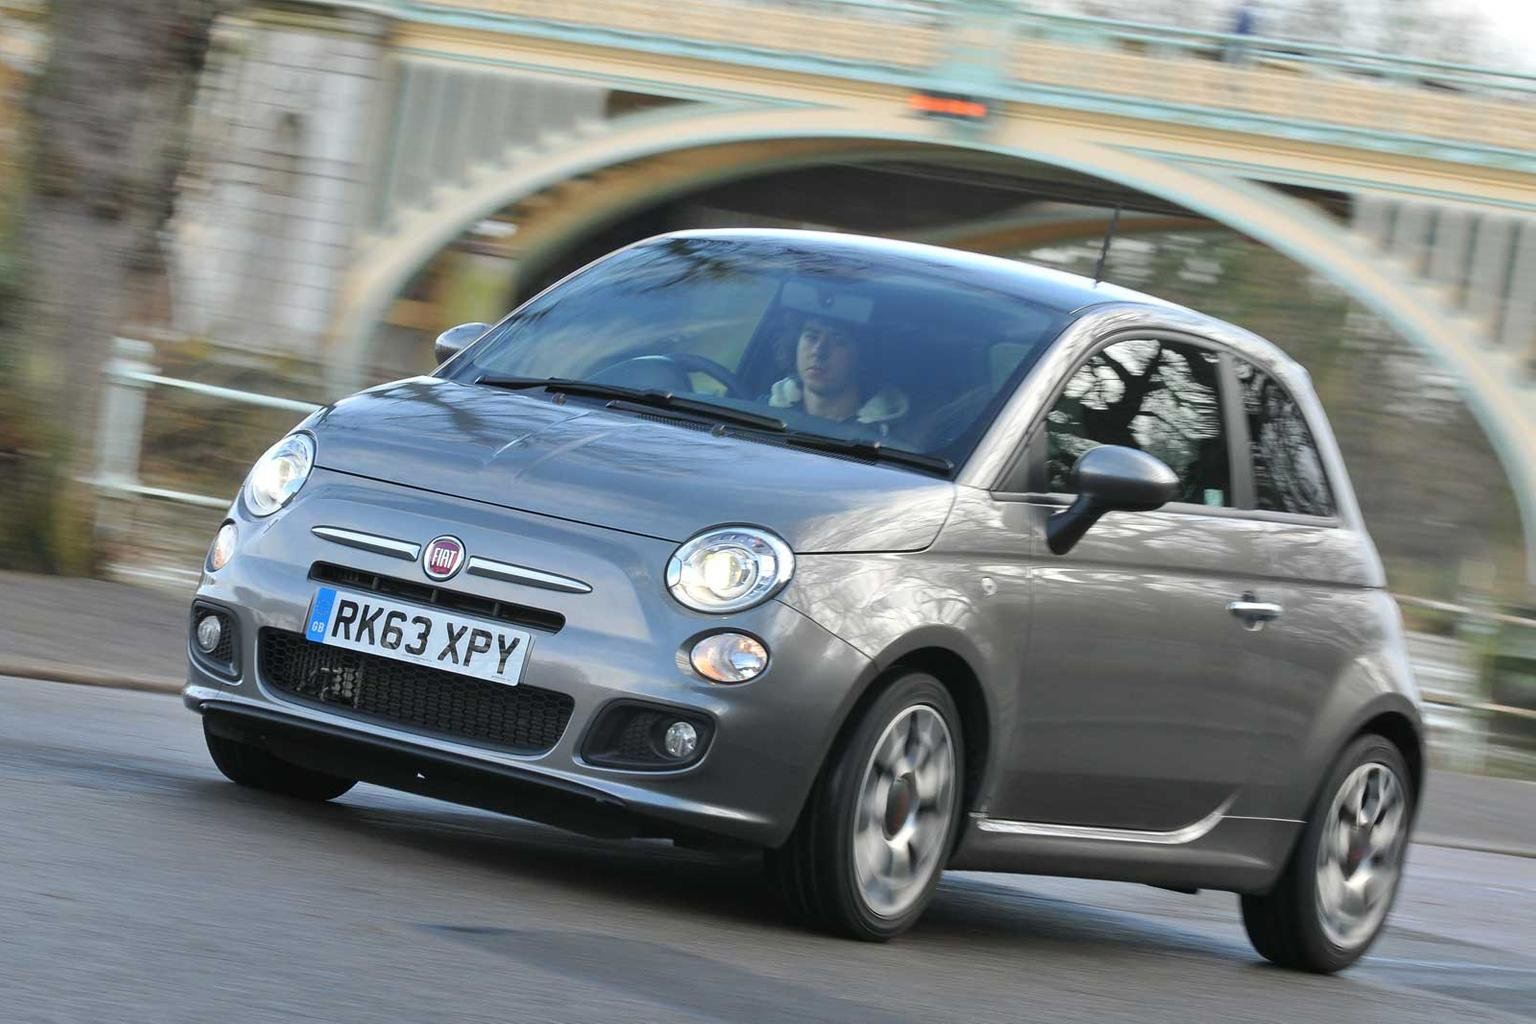 2014 Fiat 500S 0.9 Twinair review